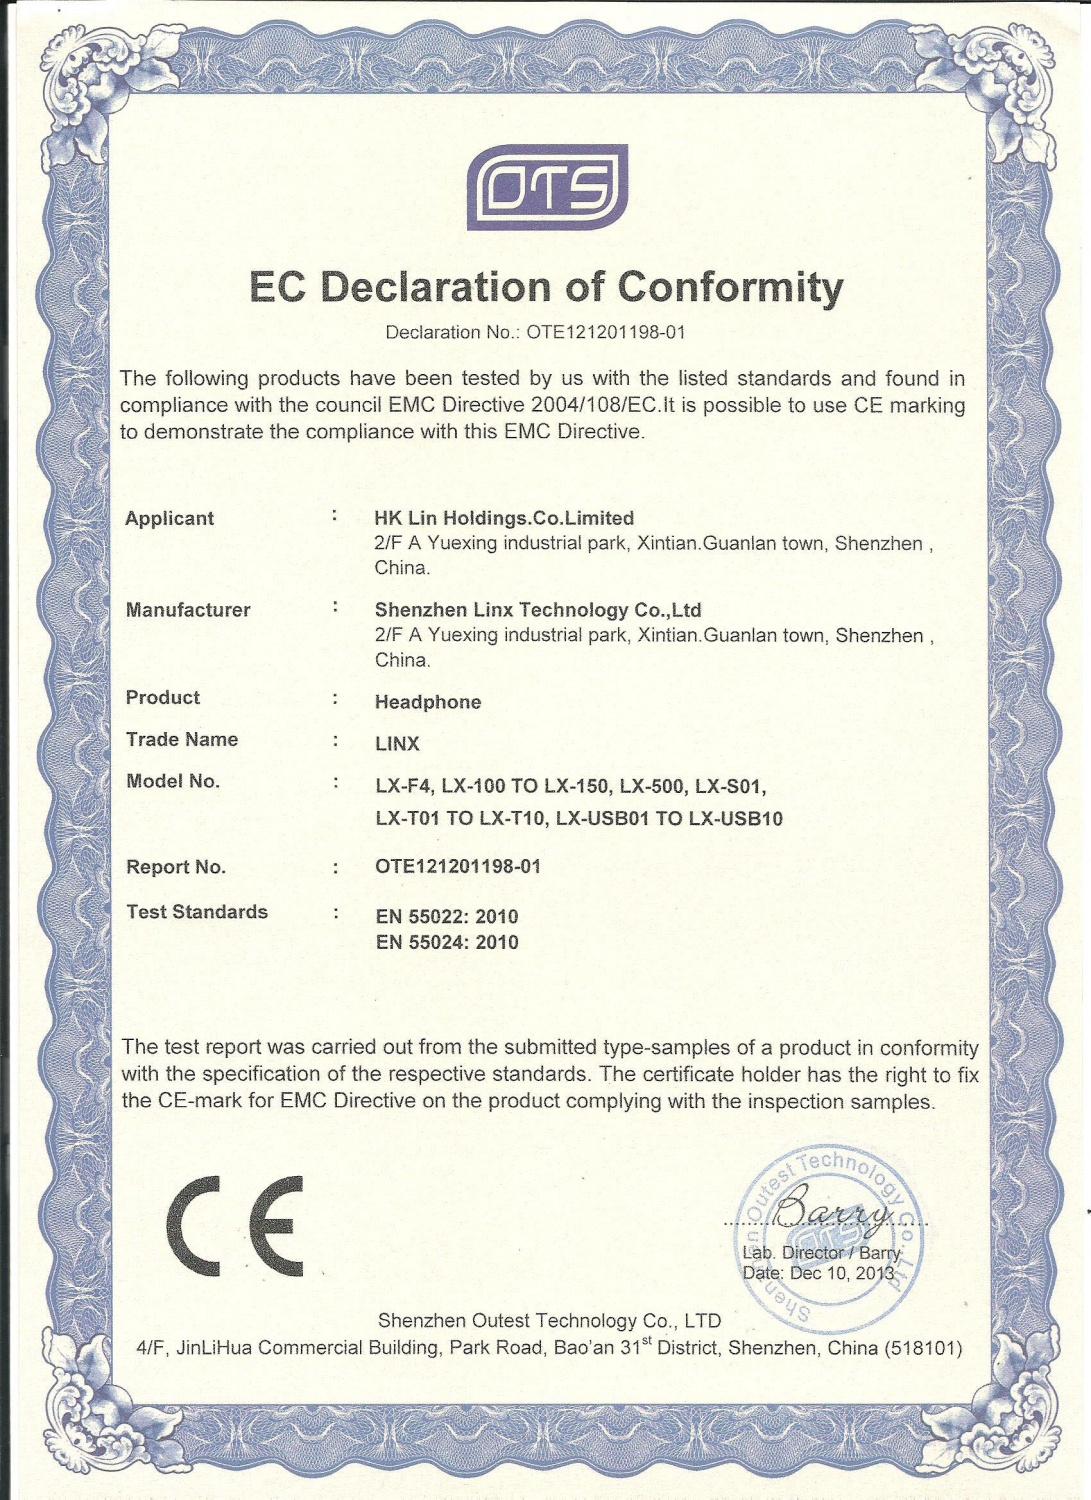 CE certificate for Headphone